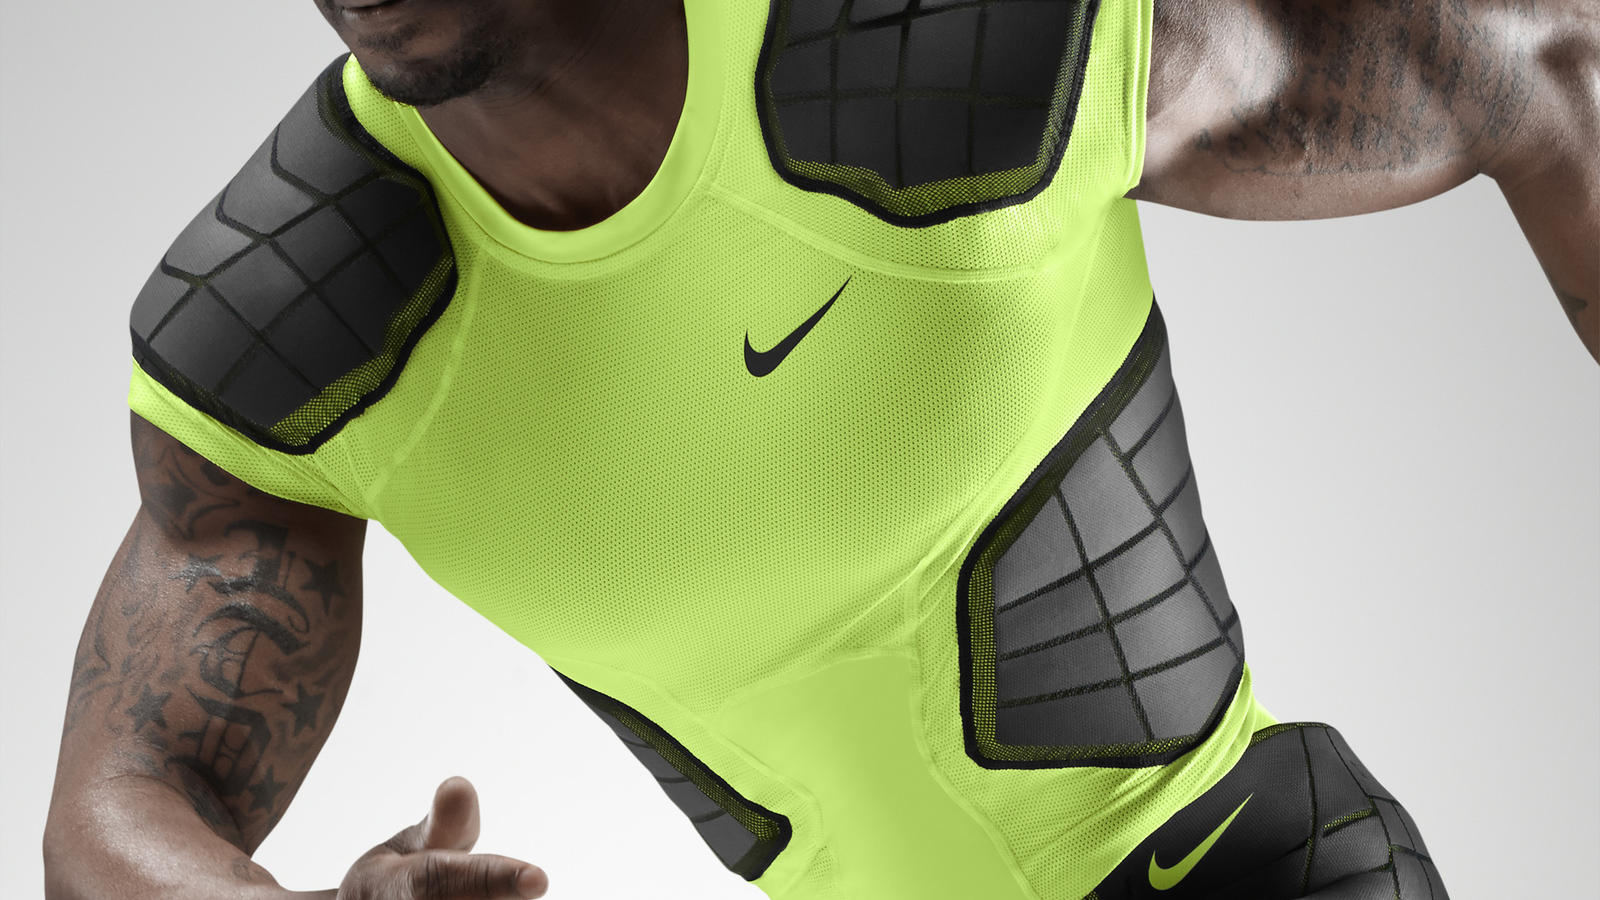 As the game of football accelerates, Nike Pro Combat Hyperstrong evolves  for better protection